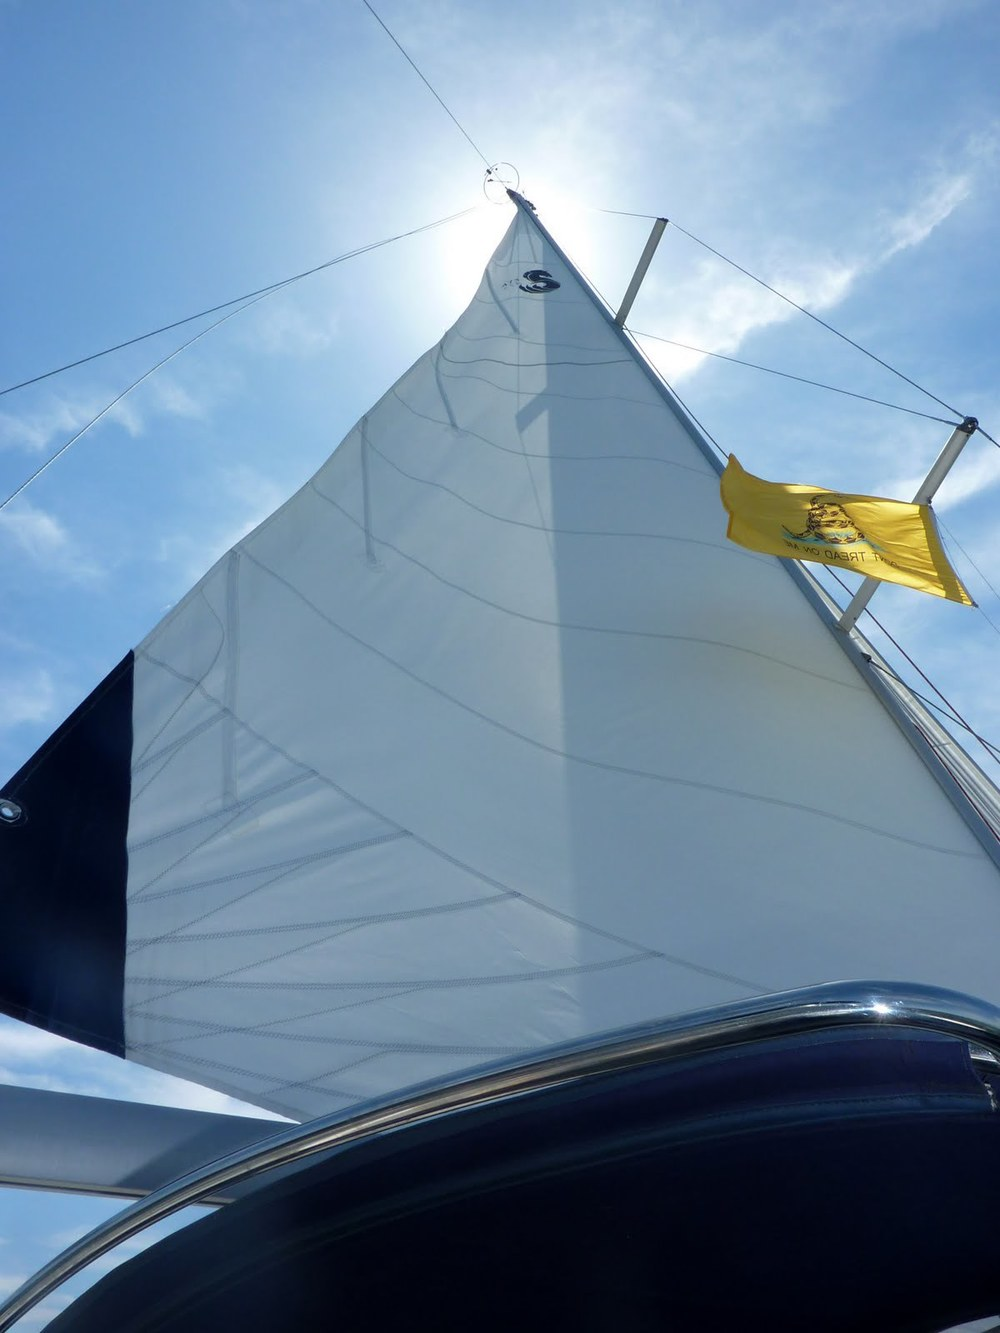 Great view of battens but not of good sail trim... (pre tea party flag - now gone - no politics allowed on CALIX)